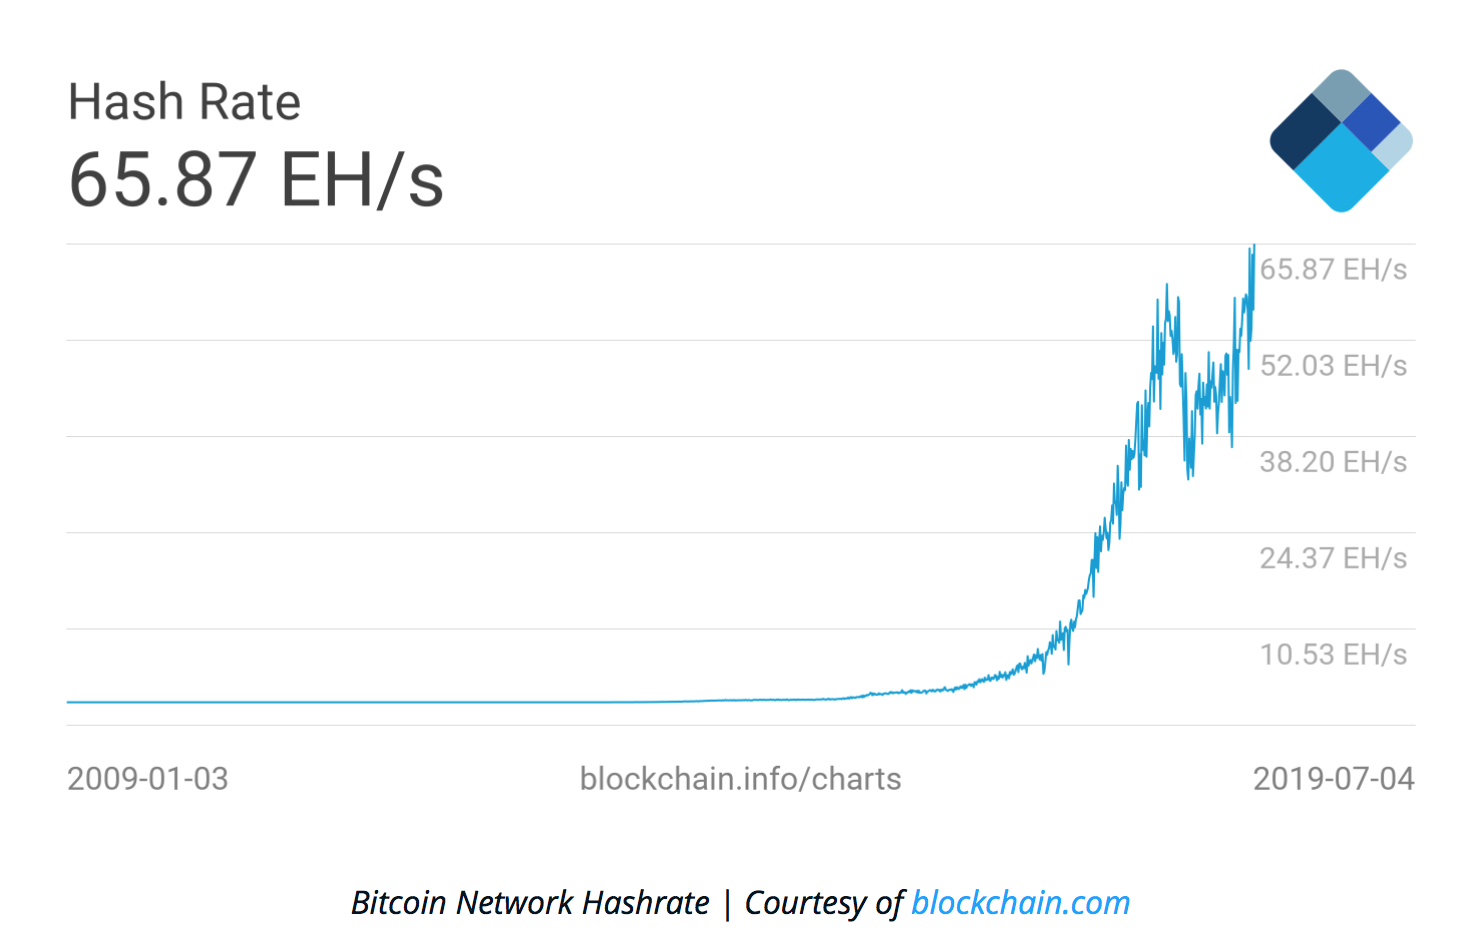 Bitcoin Hash Rate Climbs To New Record High Boosting Network Security (#GotBitcoin?)